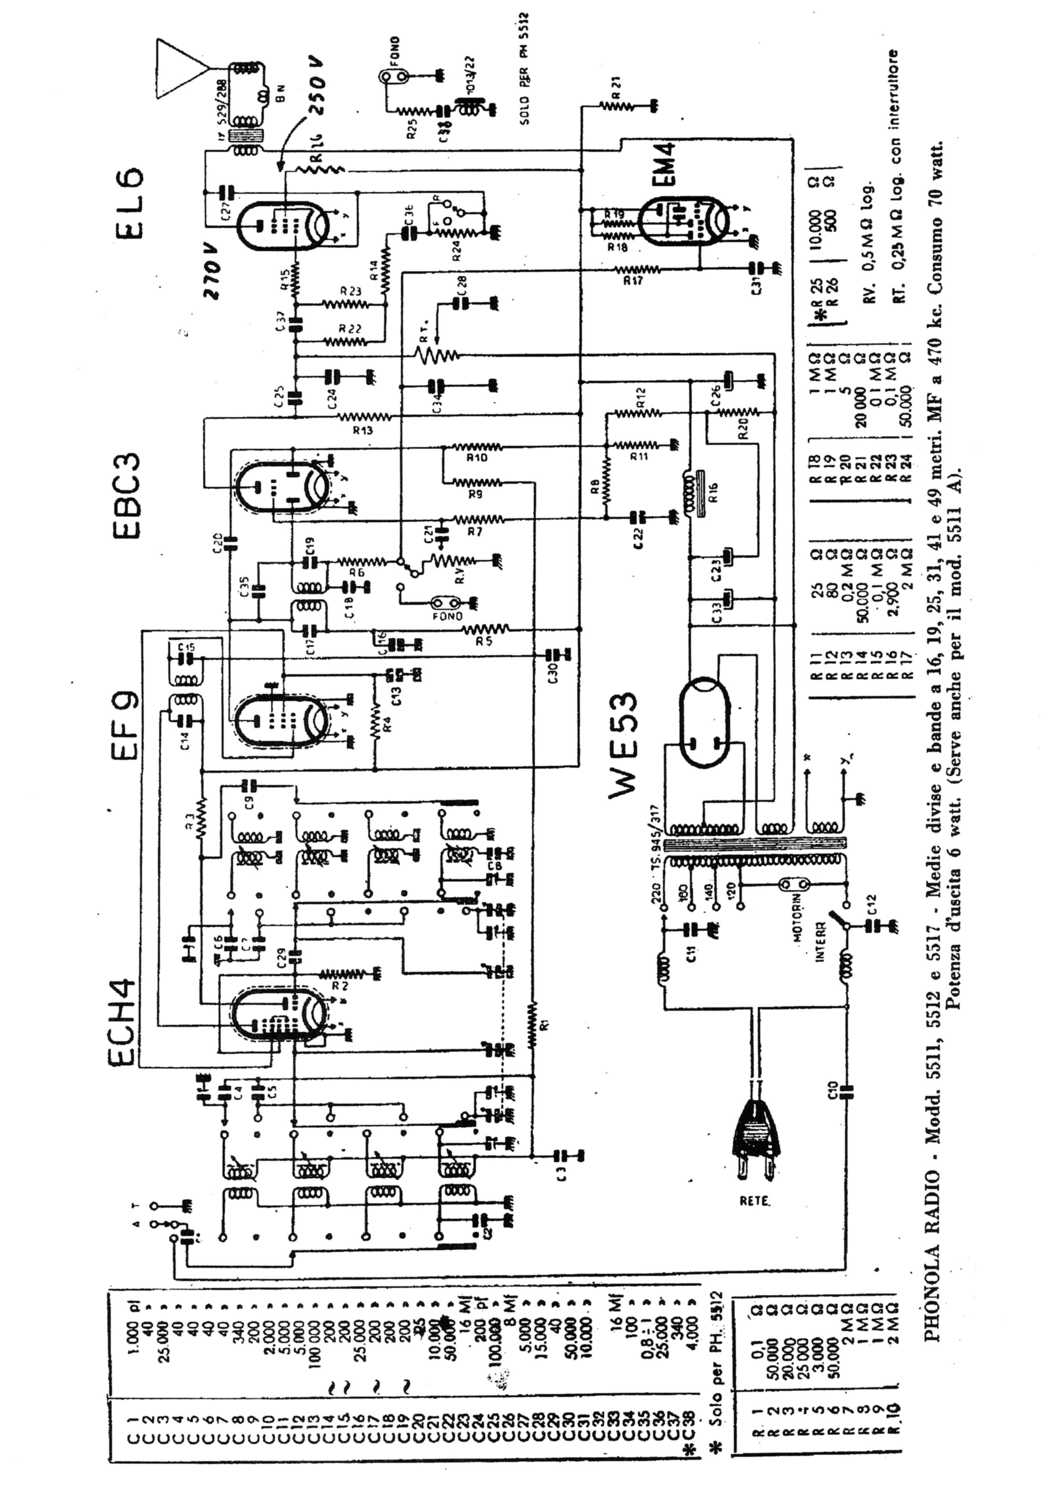 lorex wiring schematic engineering schematics wiring